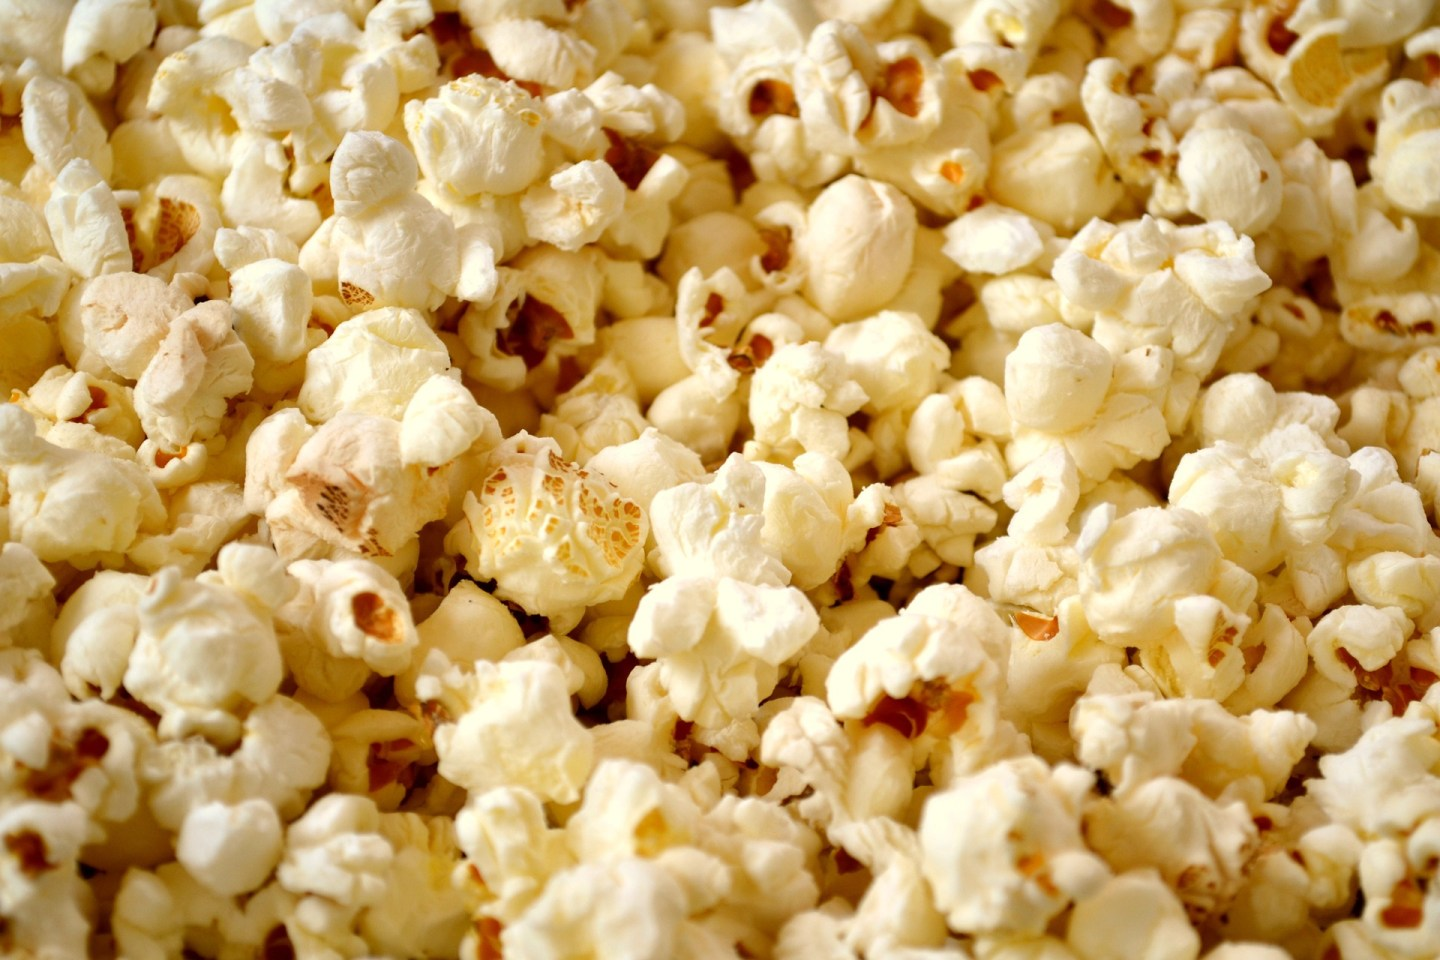 weight loss-friendly foods, try popcorn as a healthy snack!